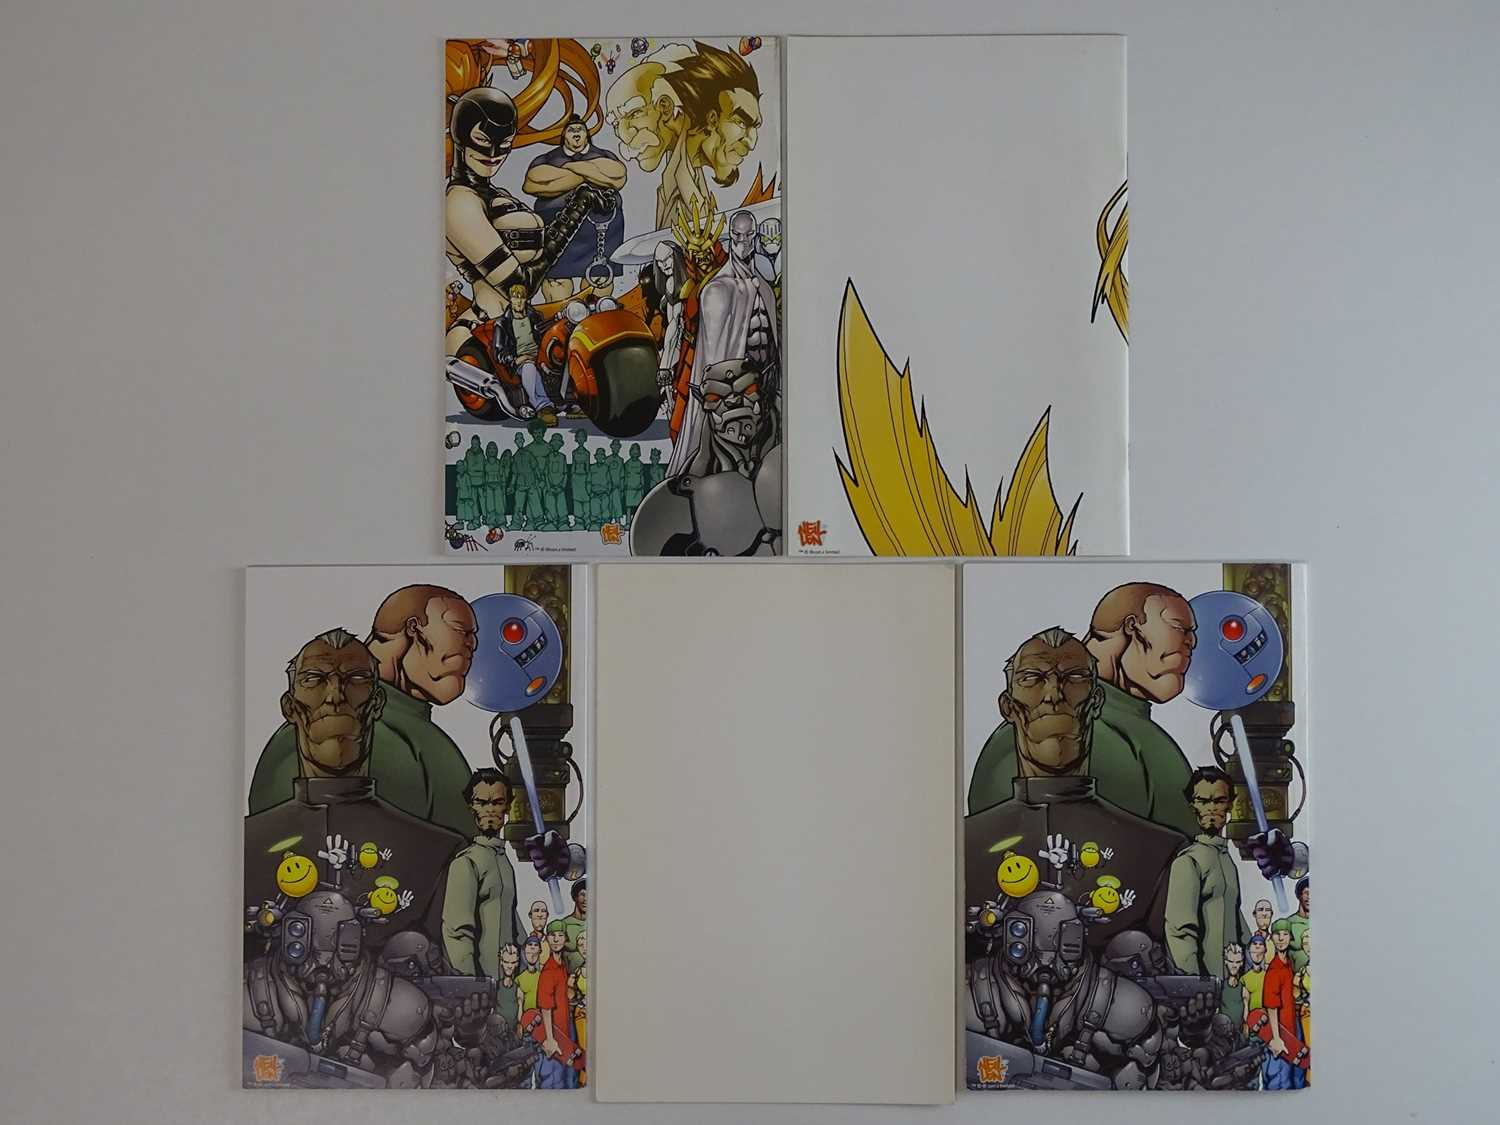 BAZOOKA JULES LOT - (5 in Lot) - (2001 - DC) - First Printings - Includes an original Signed hand- - Image 3 of 3